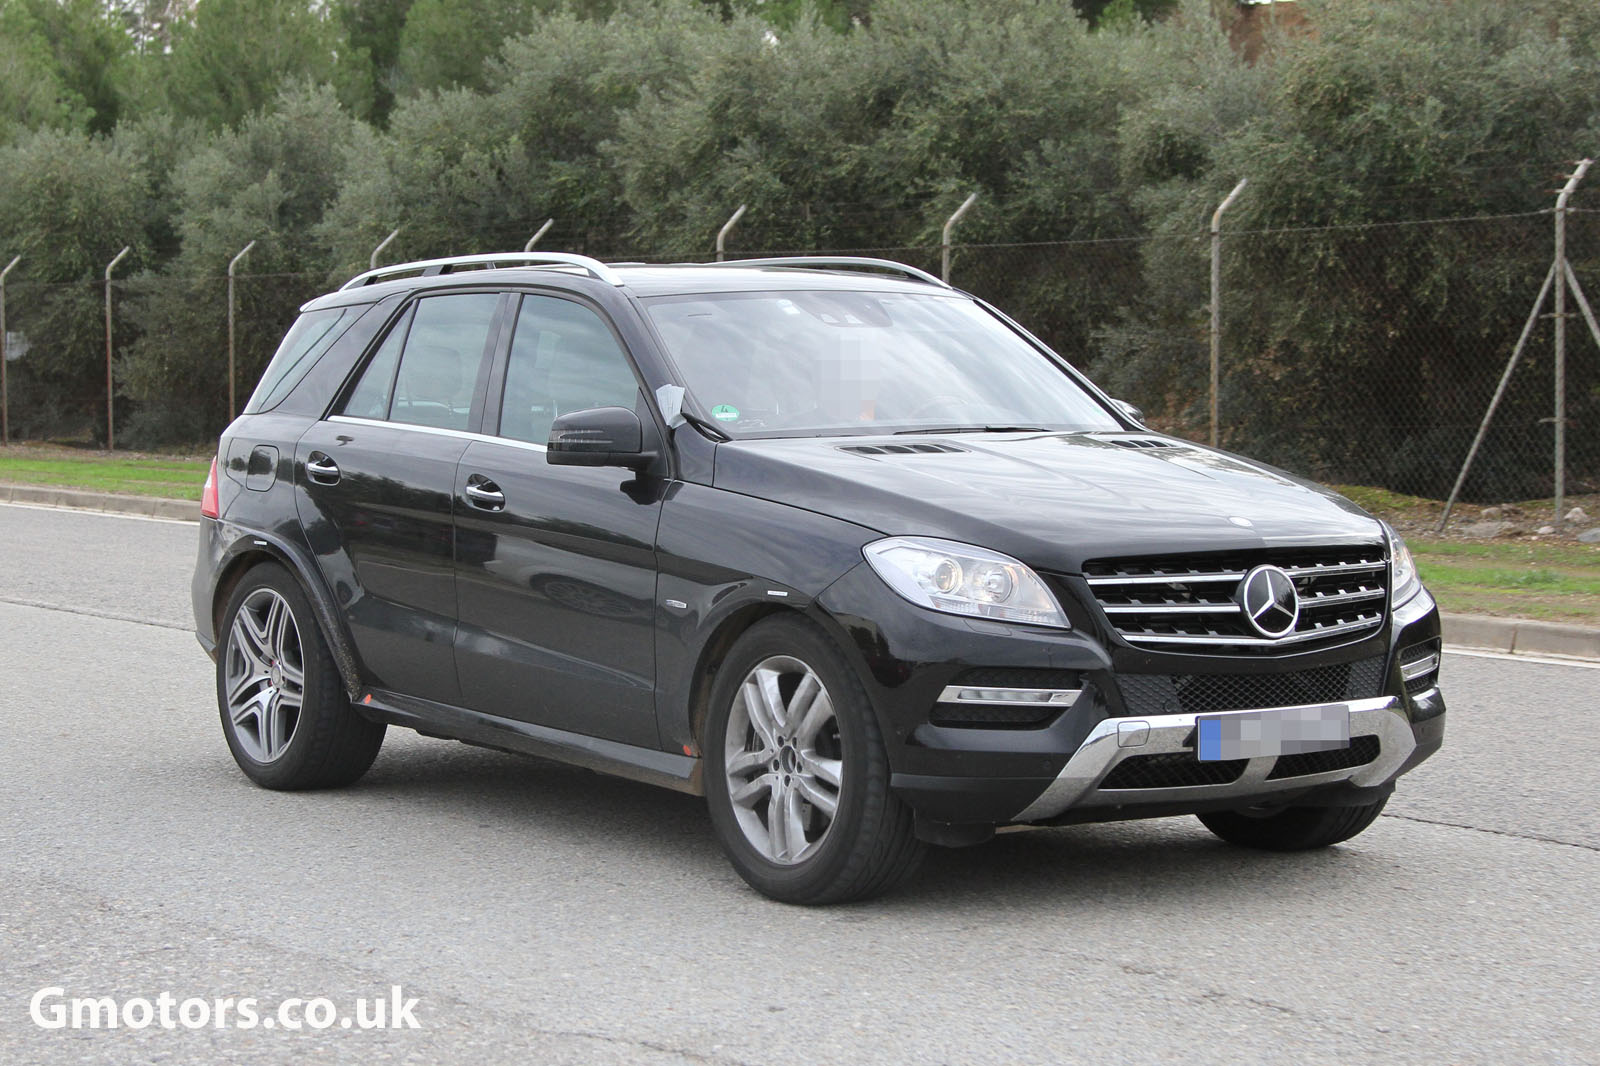 2015 - [Mercedes] GLE Coupé [C292] - Page 2 Mercedes-Benz-MLC-Chassis-Testing-Mule-8